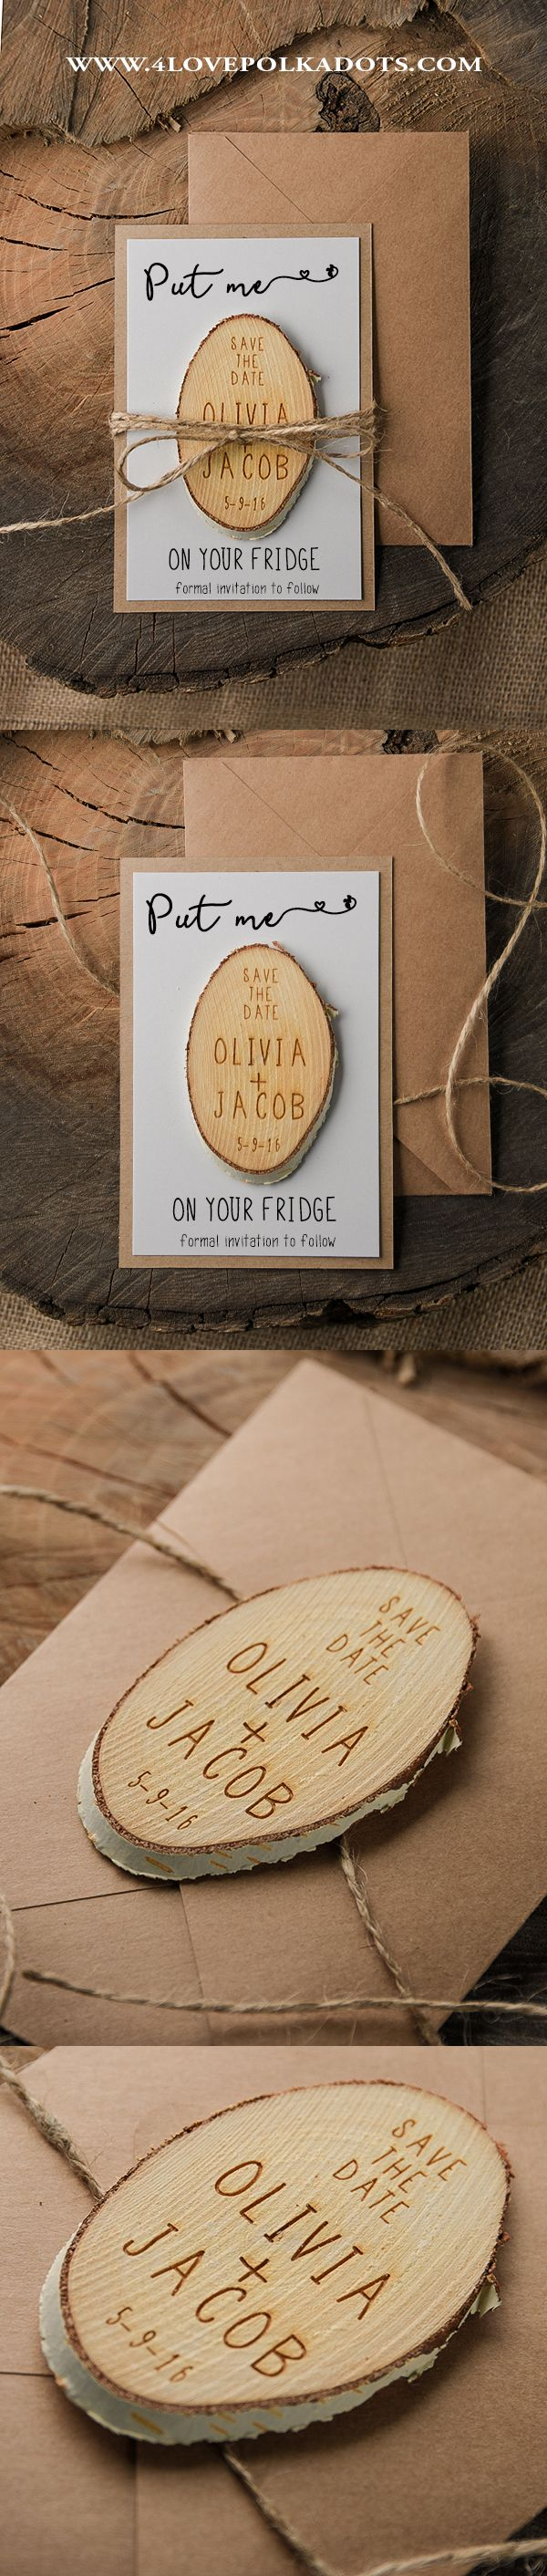 Please Save the Date! Rustic Save the Date Cards with Wooden Magnets #weddingideas #countrywedding